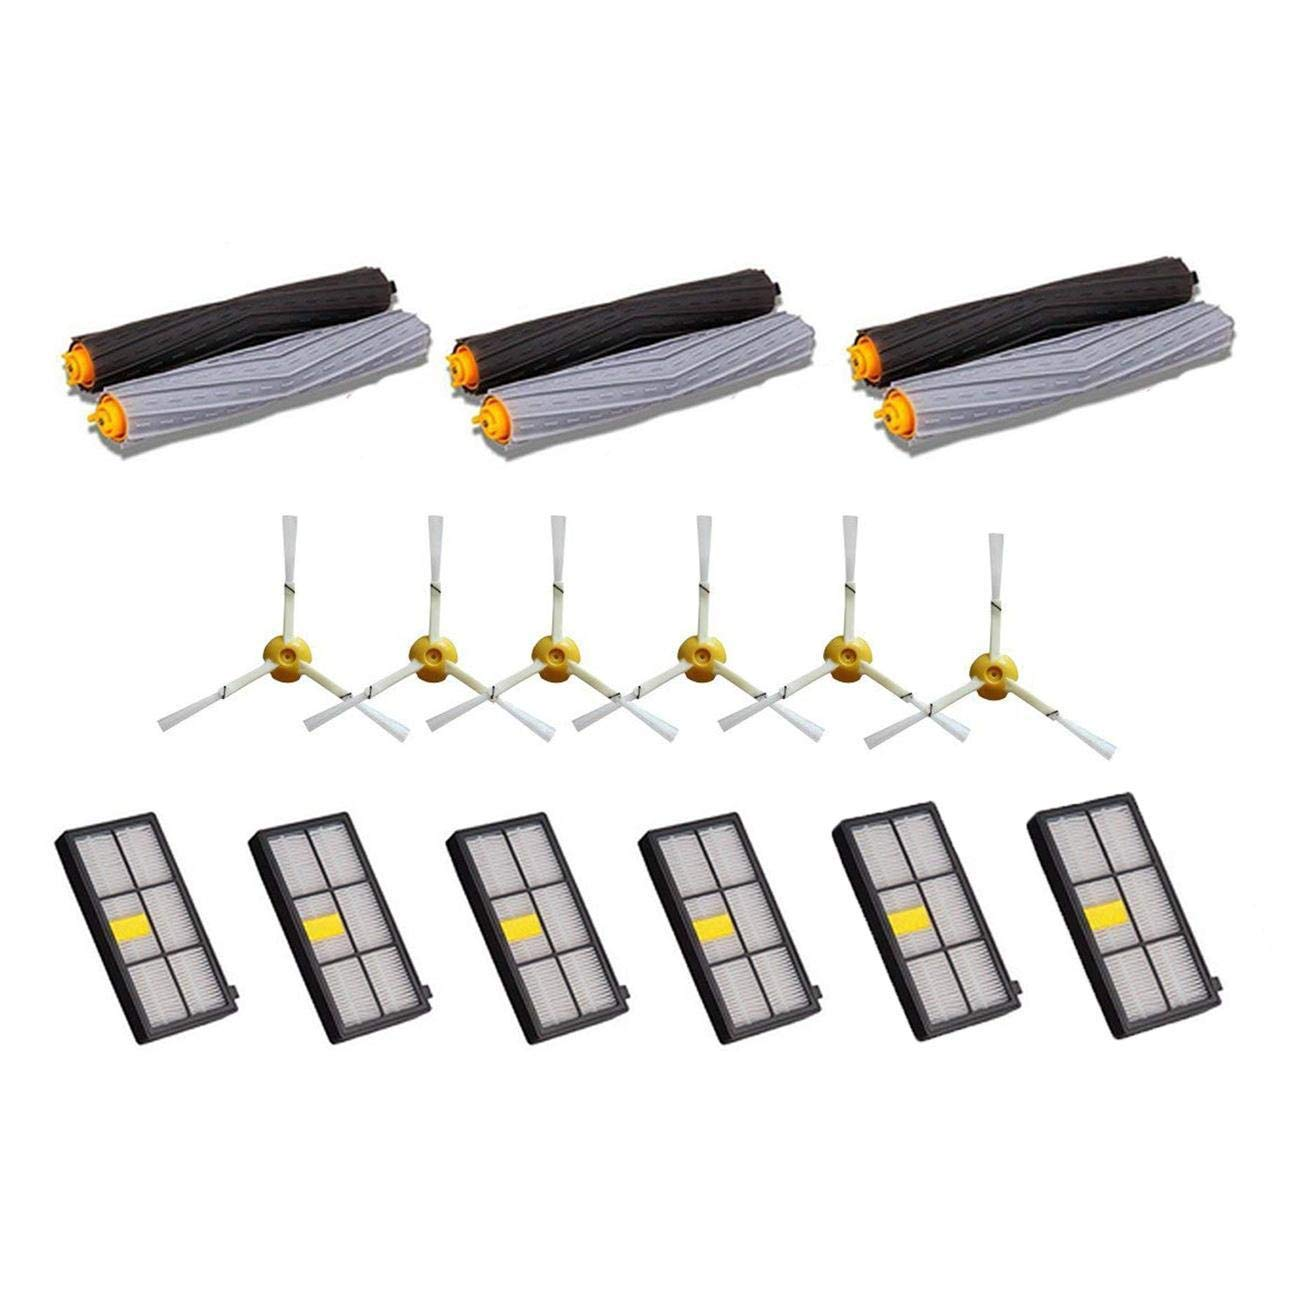 Luxuglow 6pcs Tangle-Free Debris Extractor + 6pcs Side Brush + 6pcs Filter for iRobot Roomba 800&900 Series 860 870 877 880 890 805 960 980 Vacuum Cleaning Robots Parts